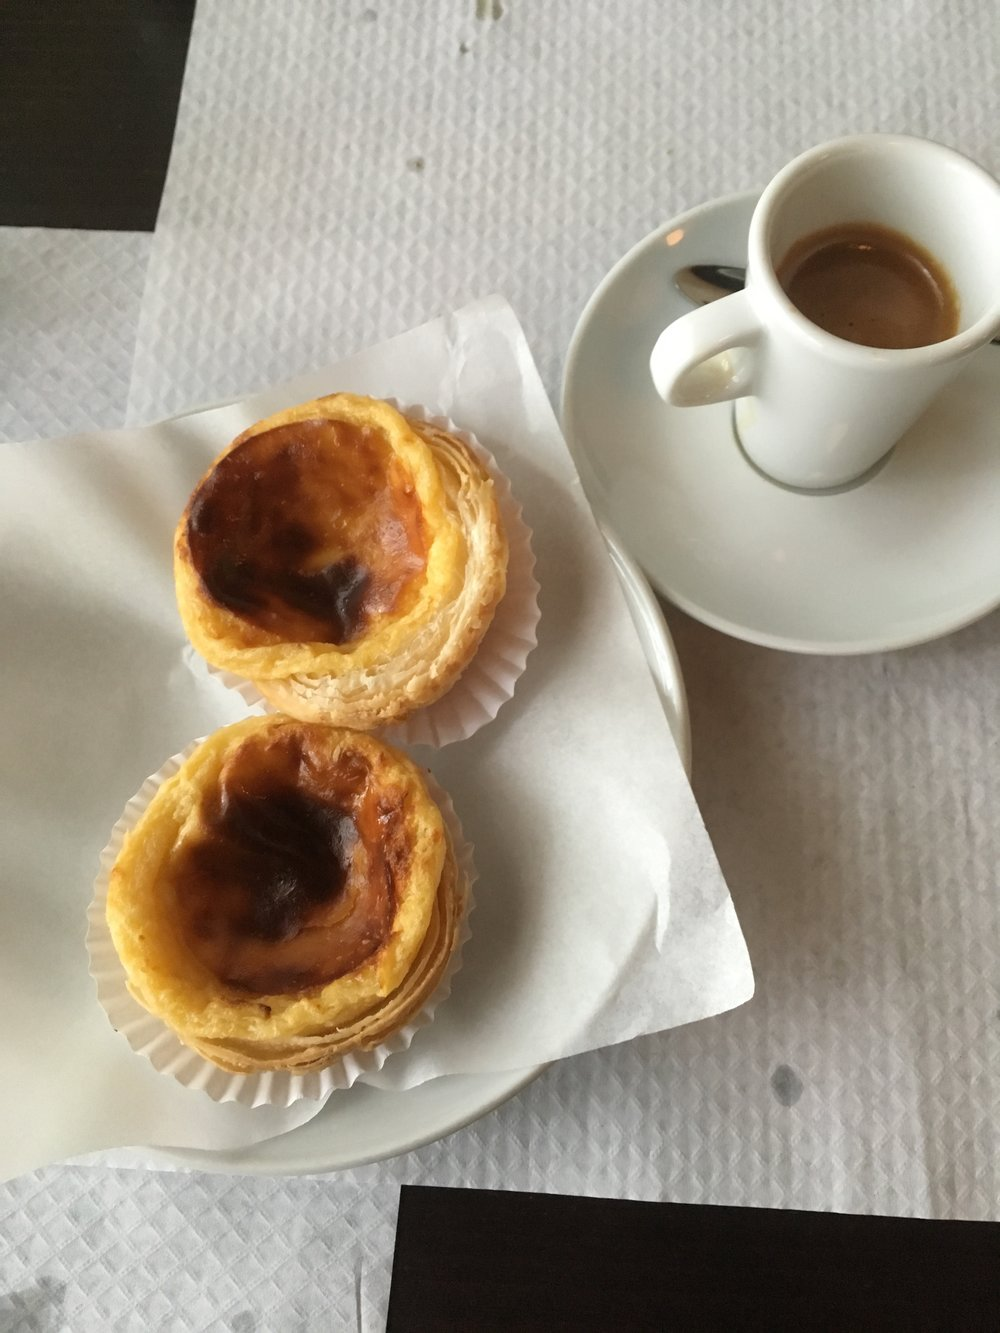 The Pastal de Nata, they were so delicious and I miss them every day!